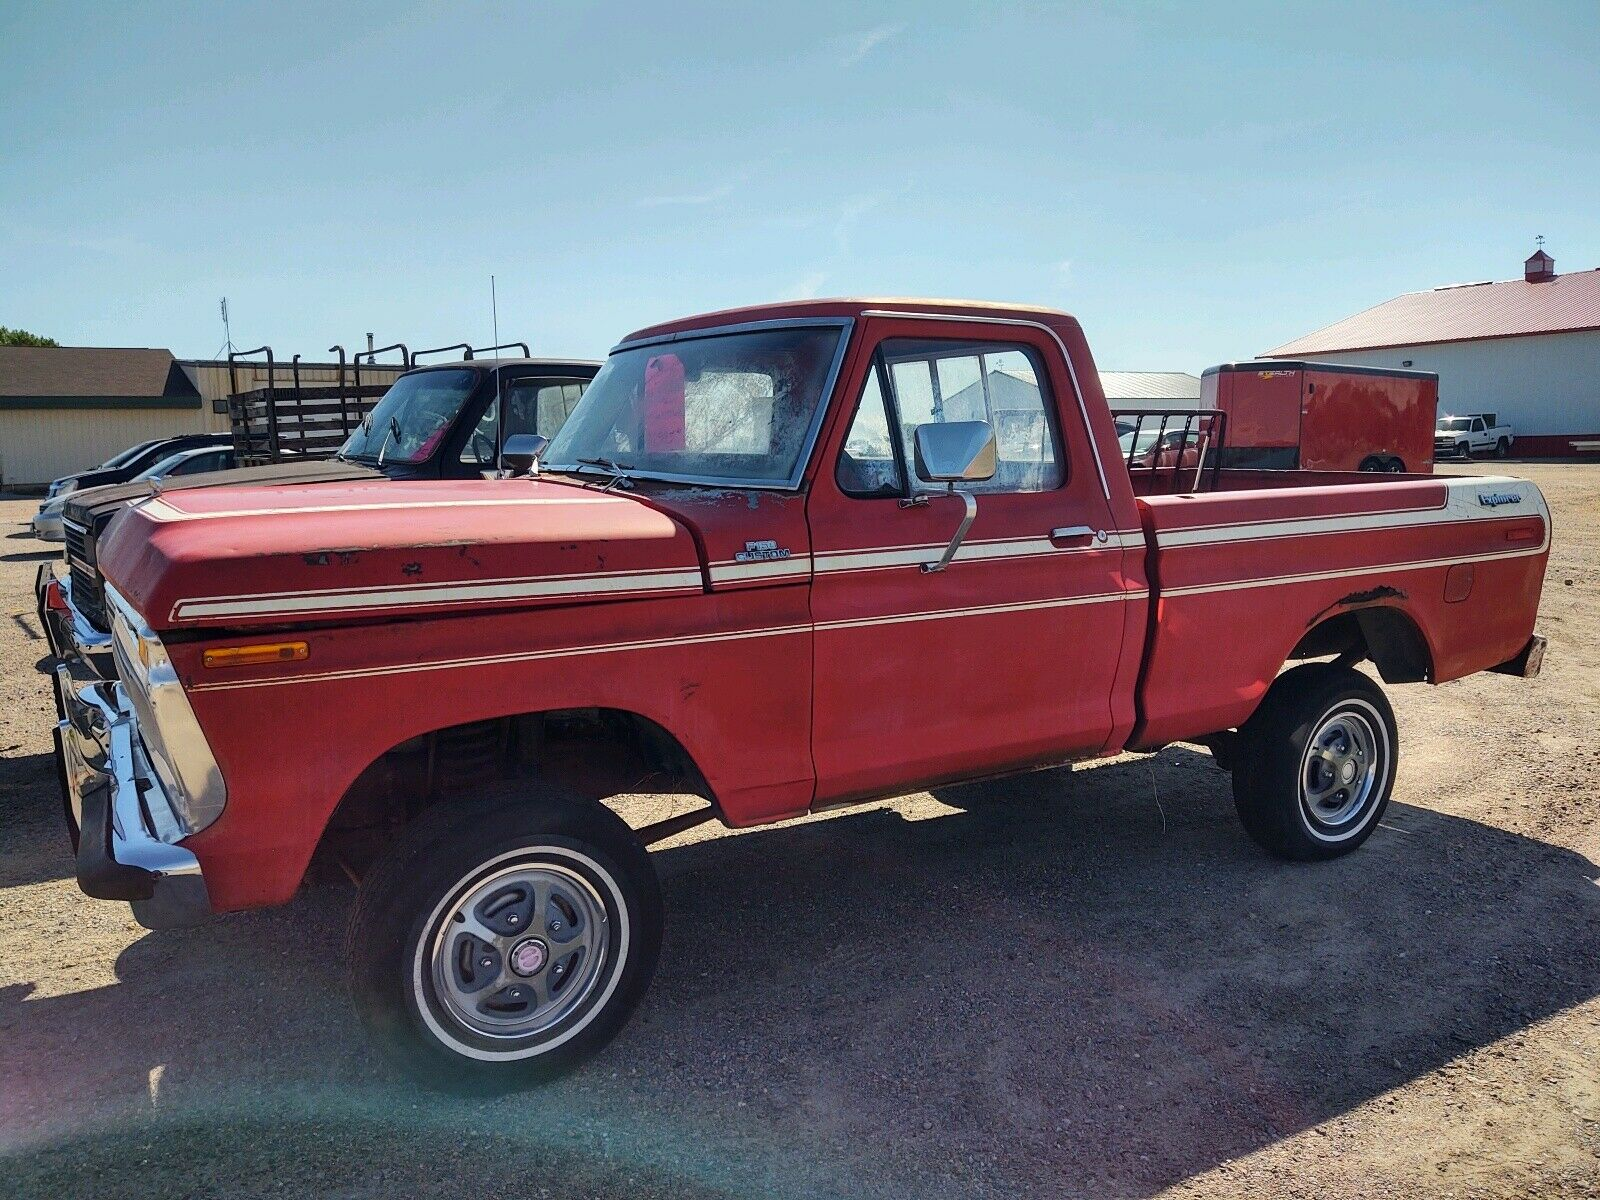 1976 Ford F-150 Explorer package